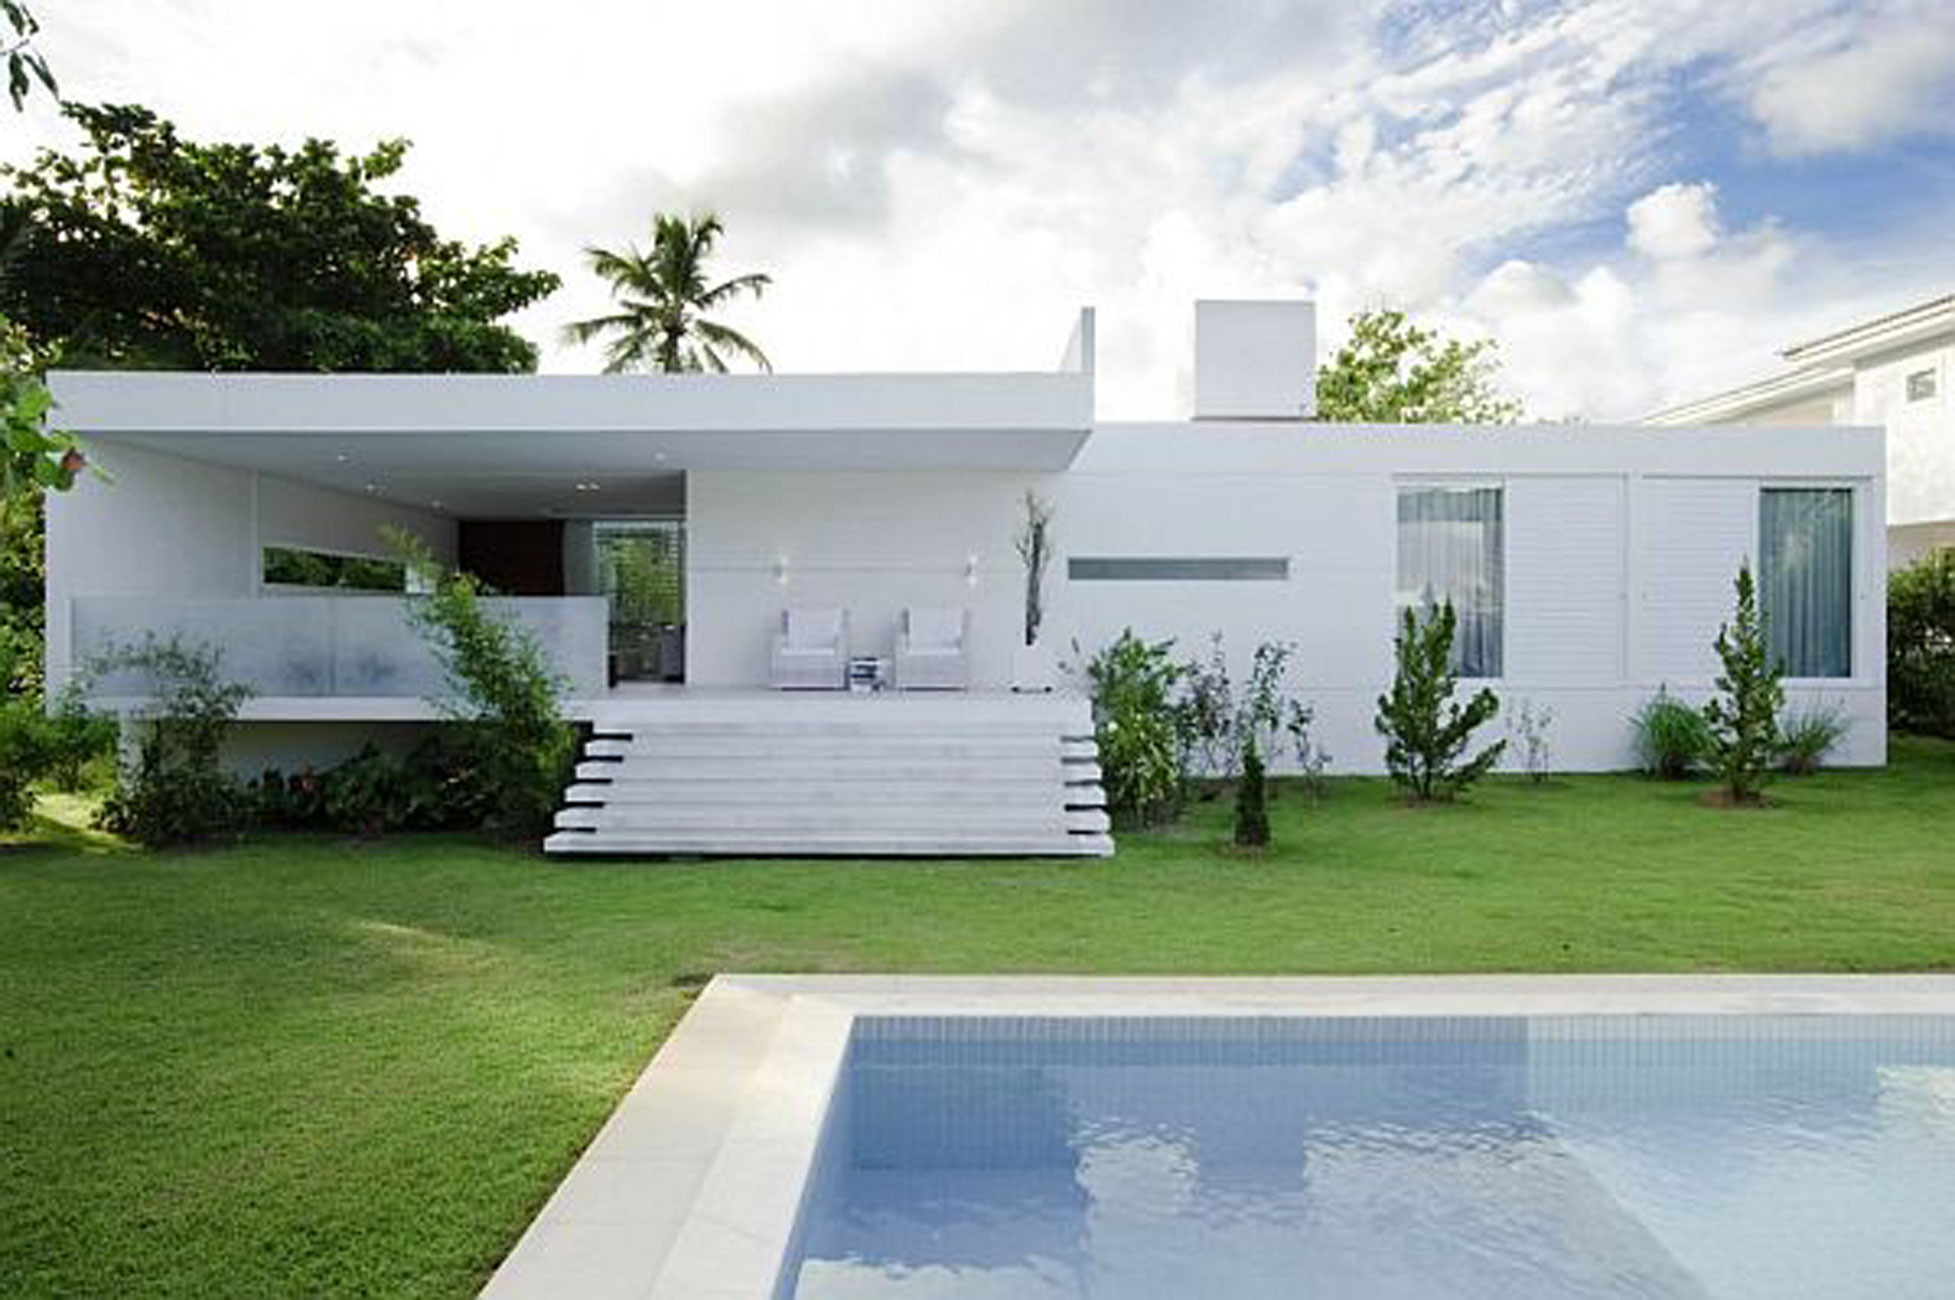 White Contemporary House In Brazil With Swimming Pool Interiors Inside Ideas Interiors design about Everything [magnanprojects.com]